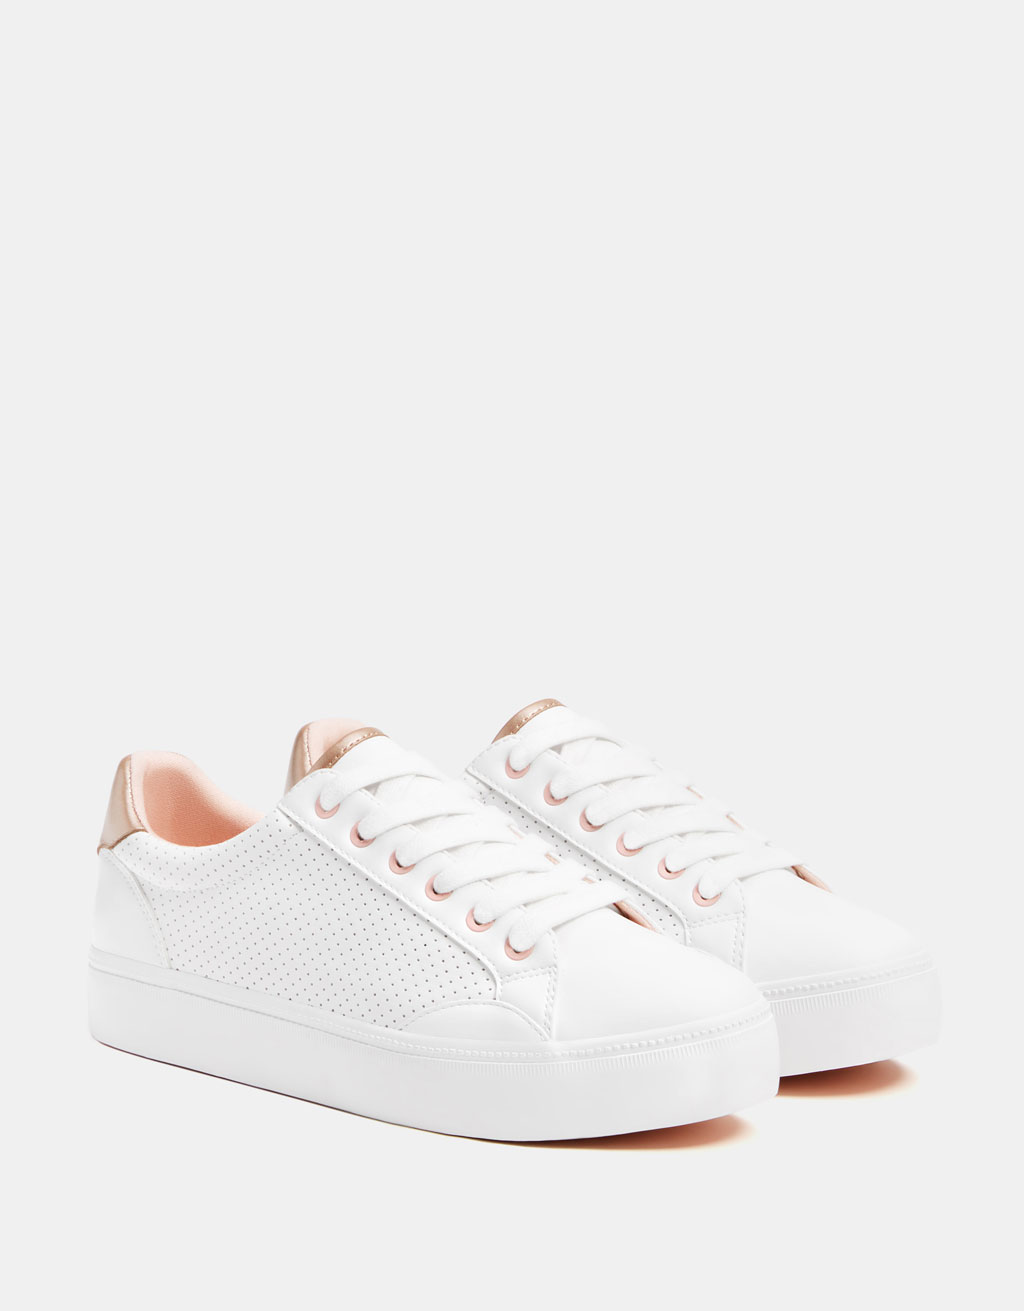 White perforated sneakers